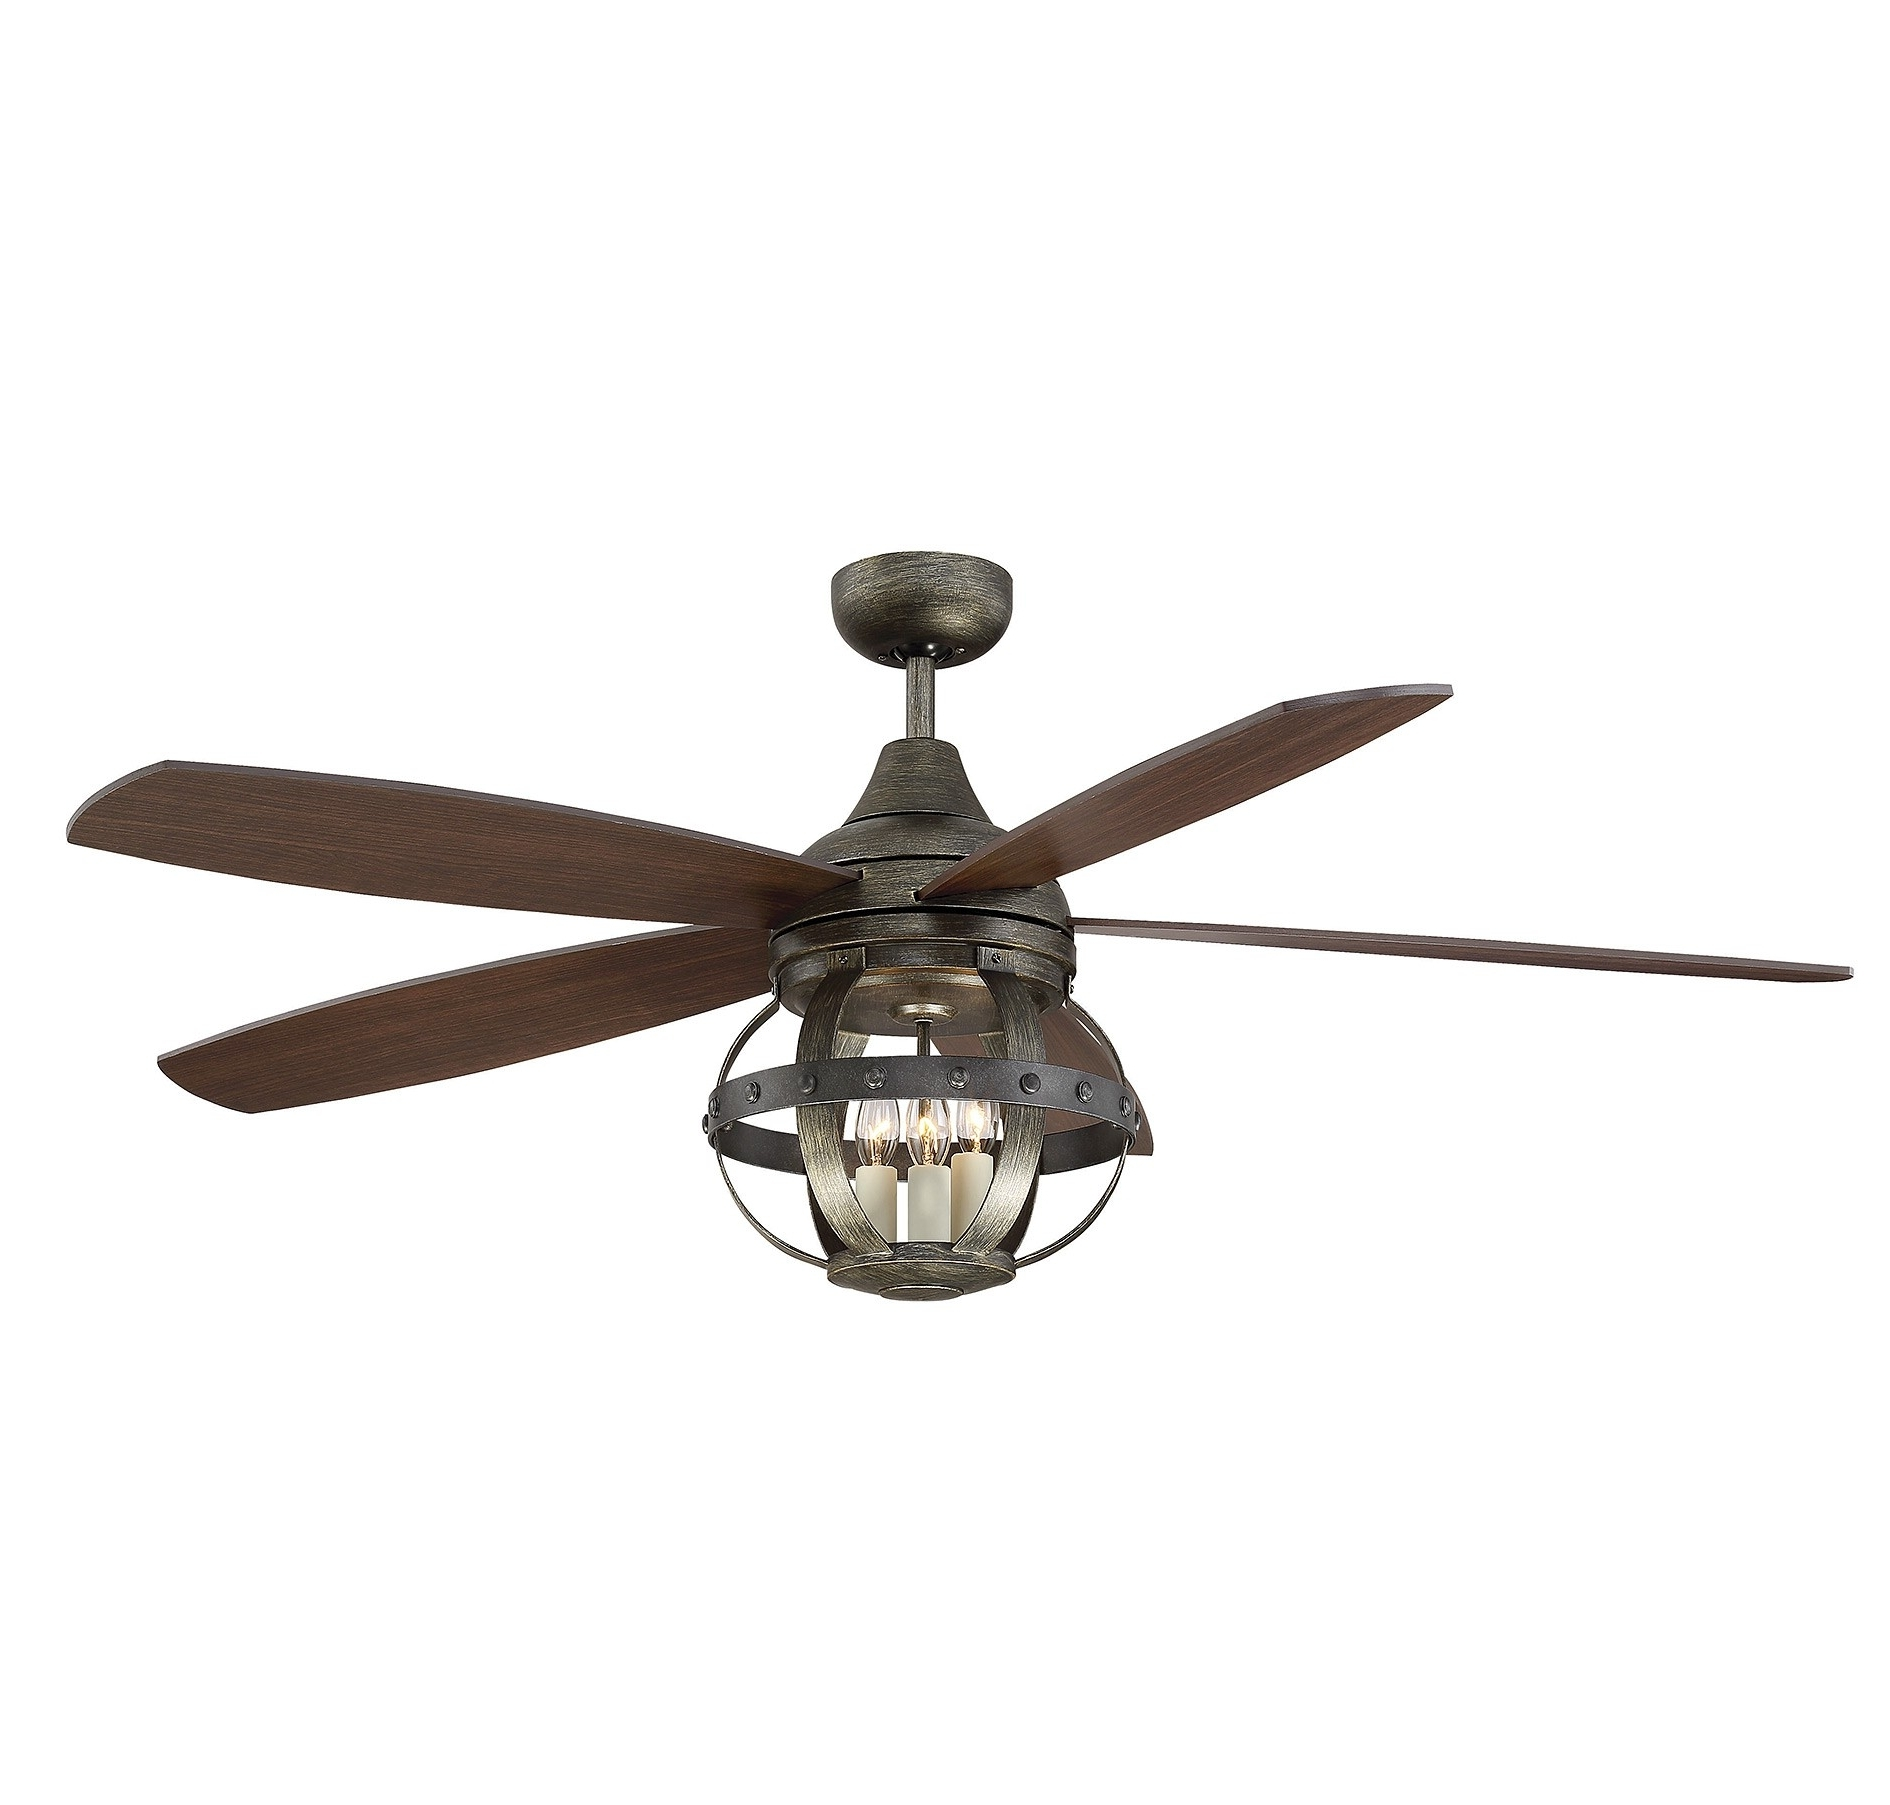 Ceiling Fanssavoy House Throughout 2019 24 Inch Outdoor Ceiling Fans With Light (View 6 of 20)